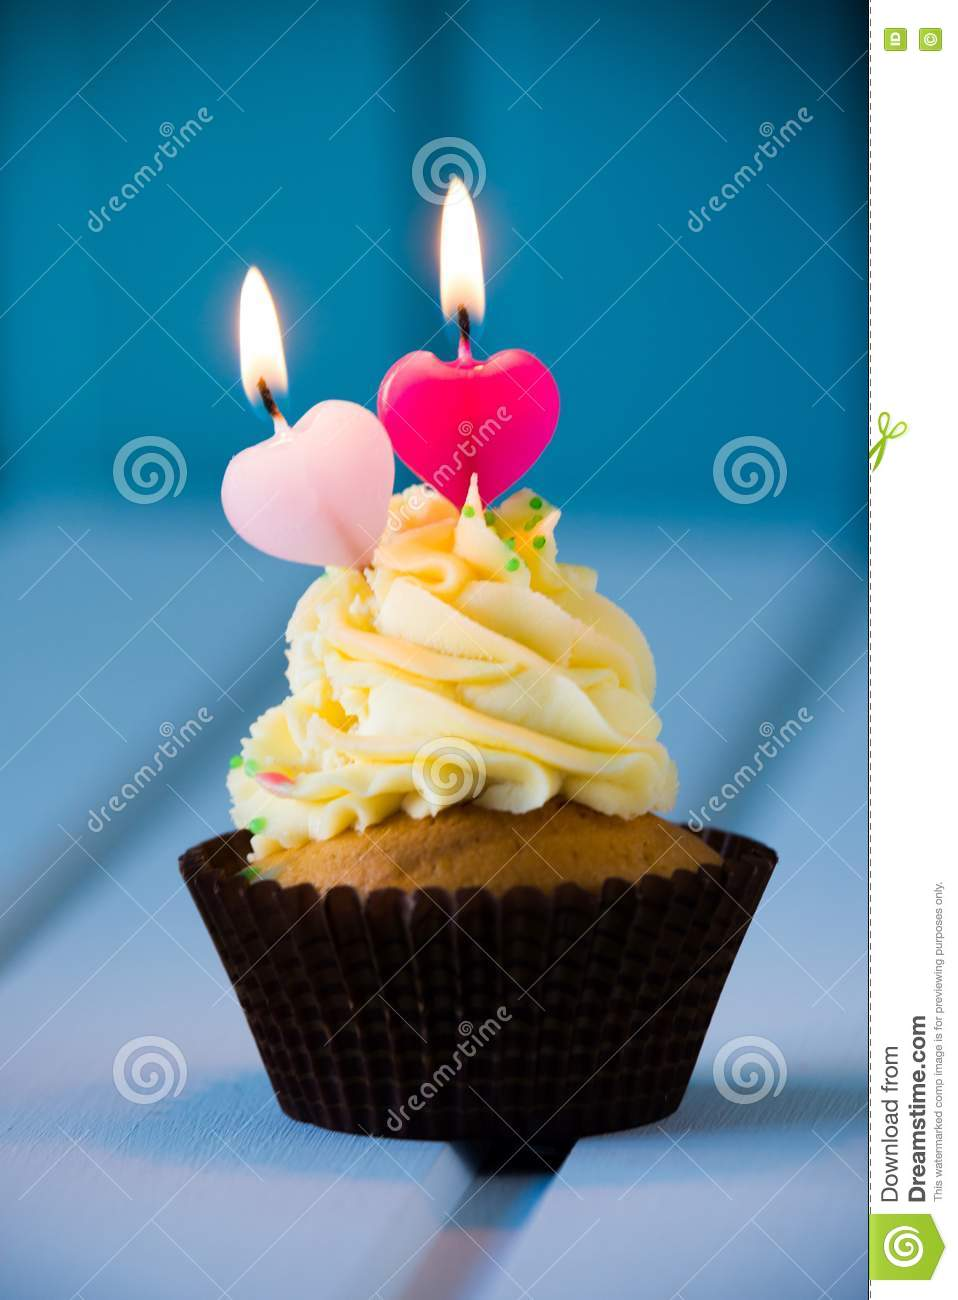 Cupcake With A Heart Shaped Candles For 2 Second